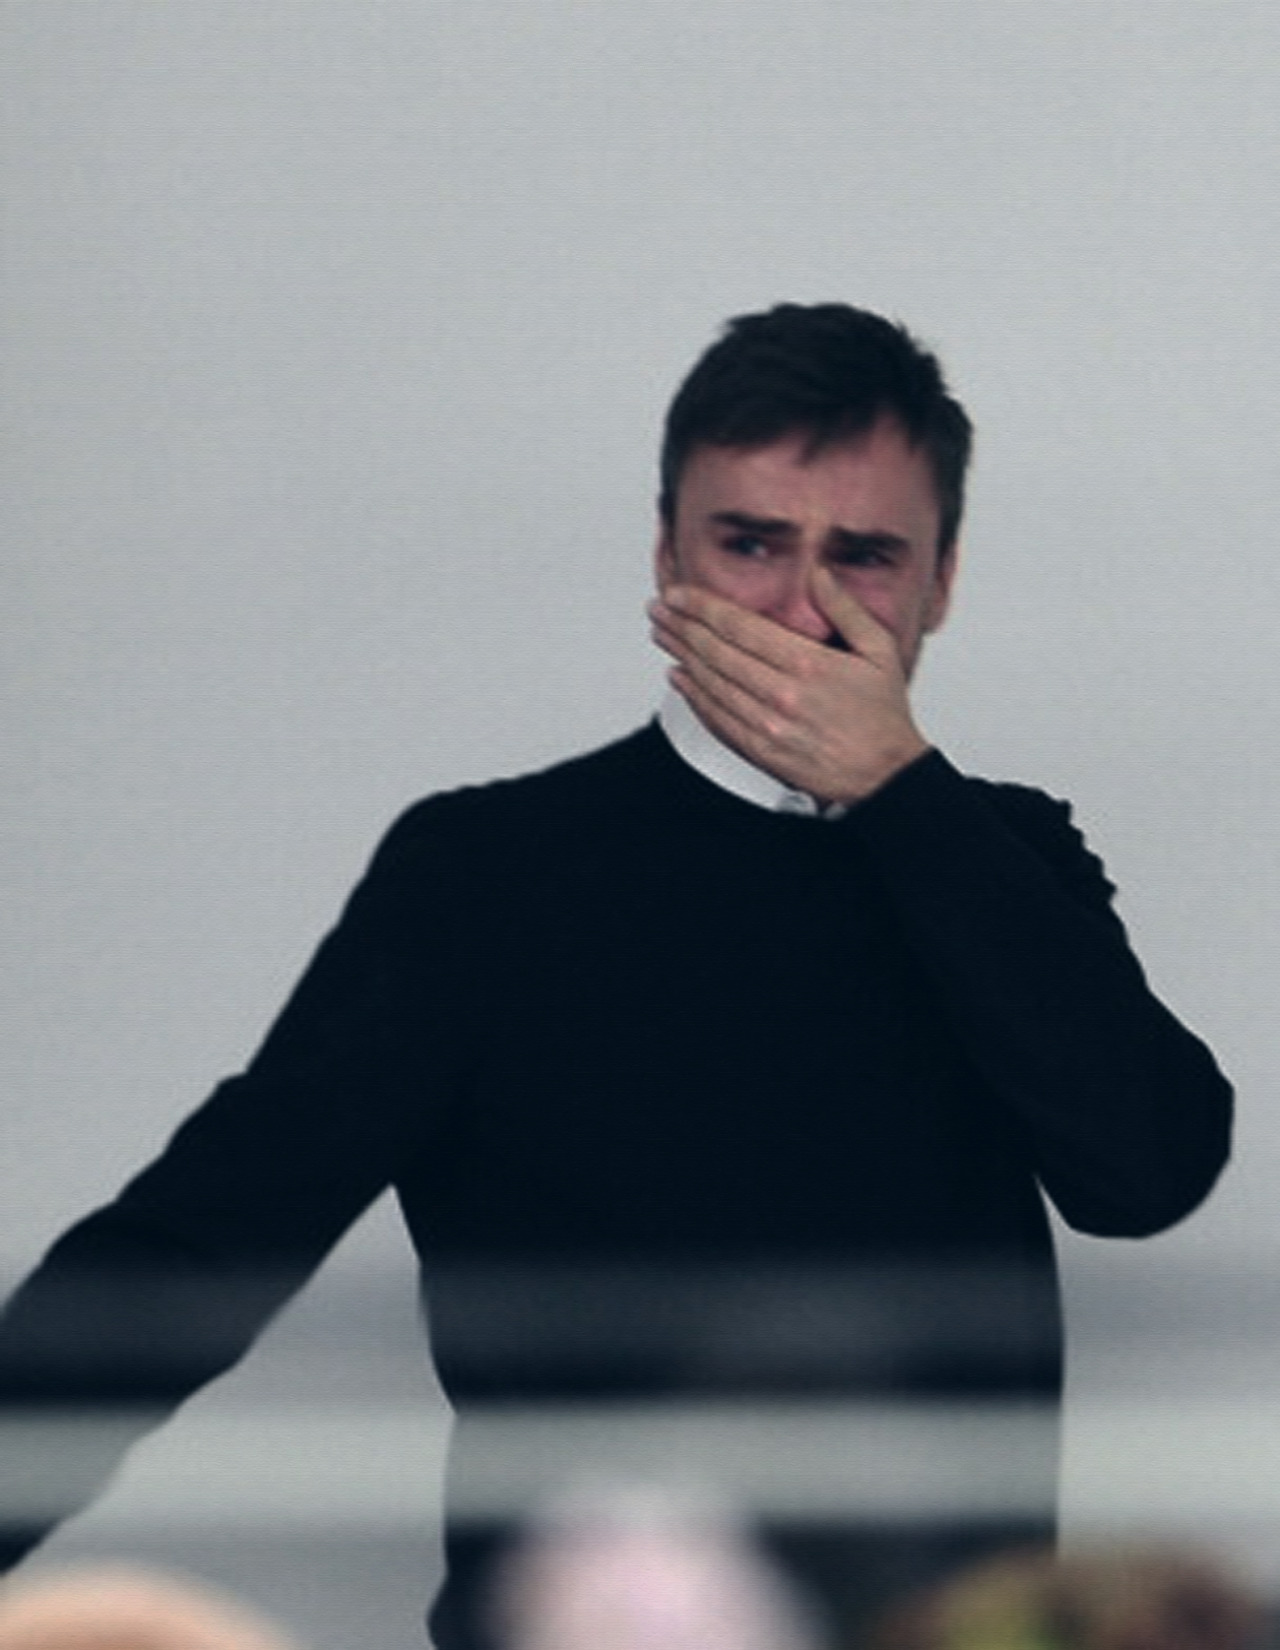 Raf Simons crying at Jil Sander FW 2012